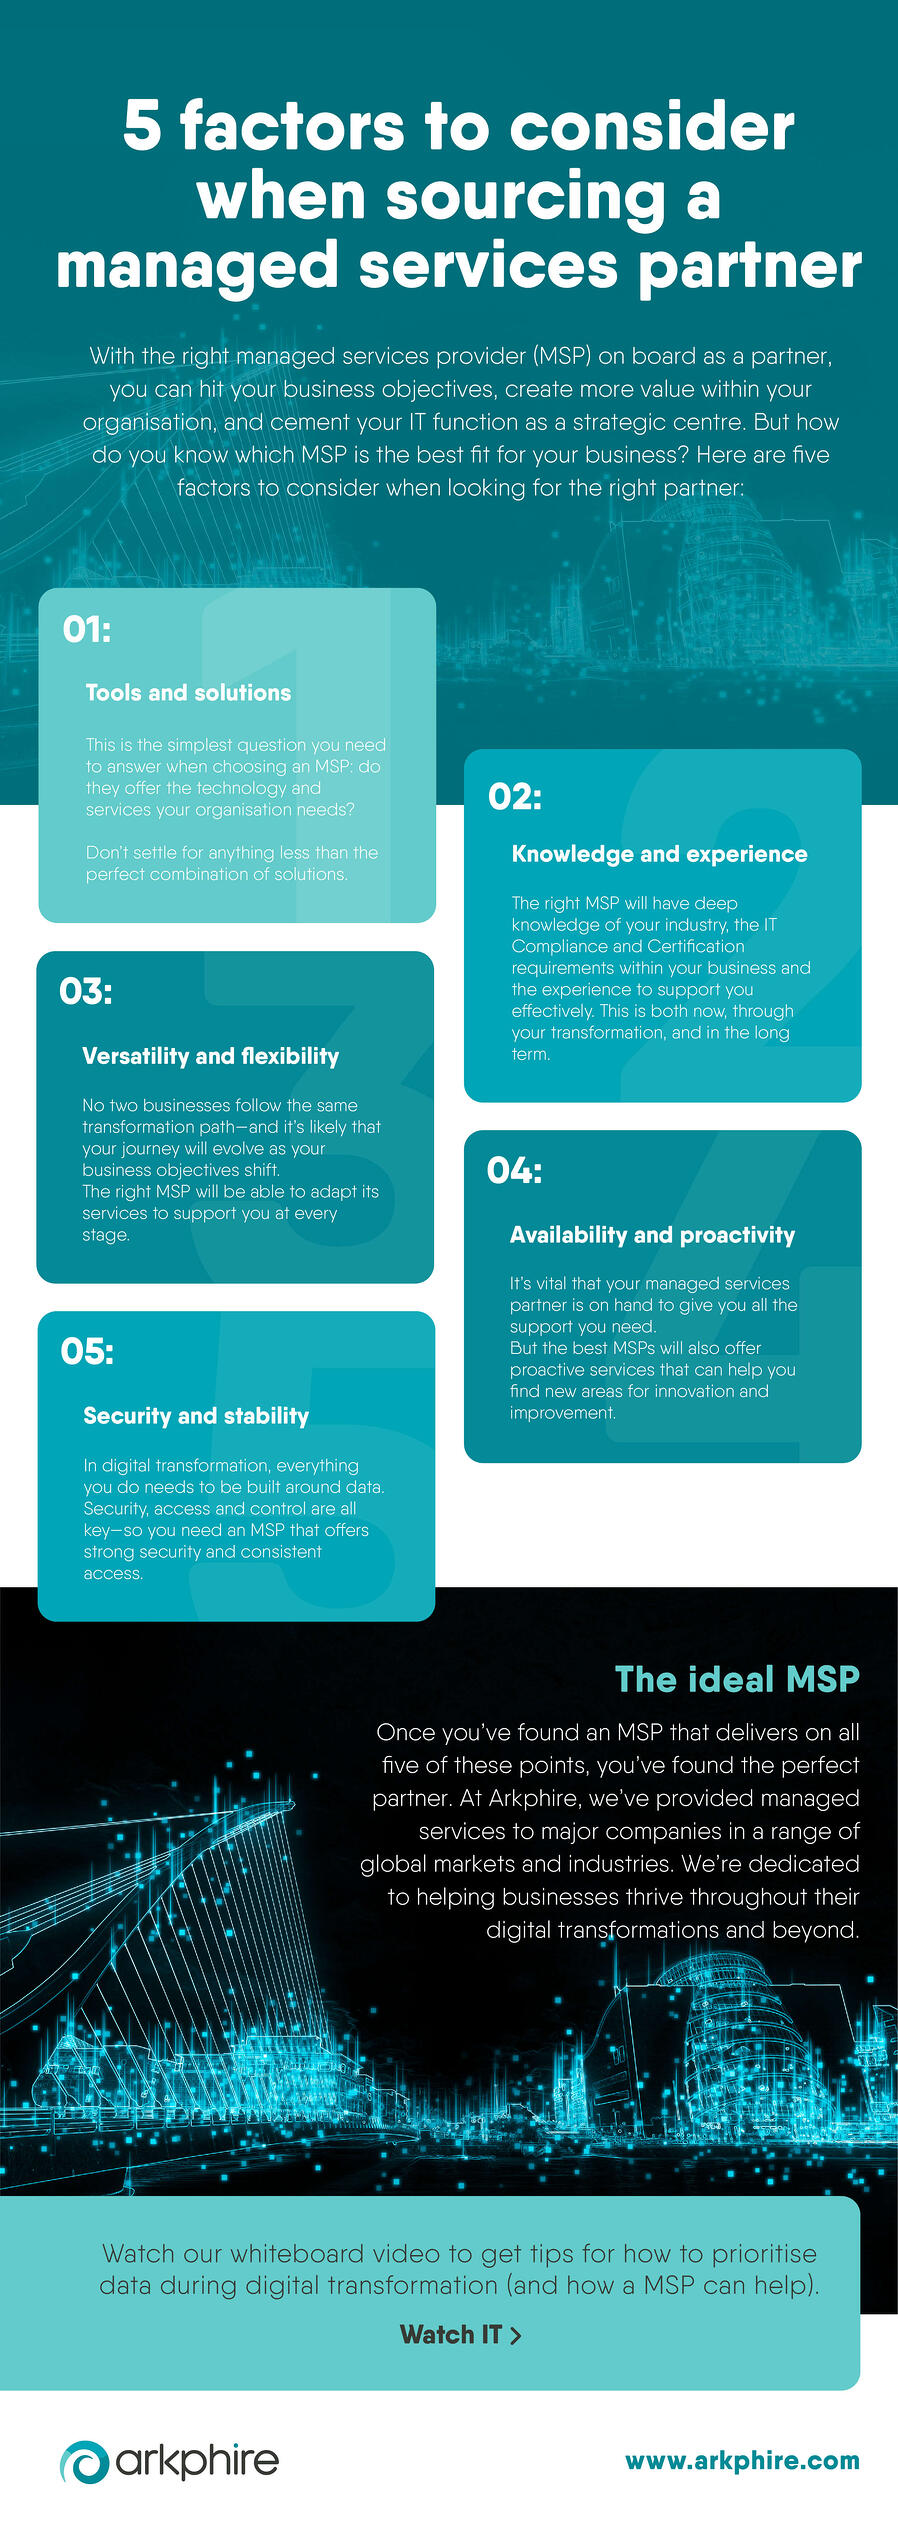 Arkphire-5factors-when-sourcing-MSP-infographic